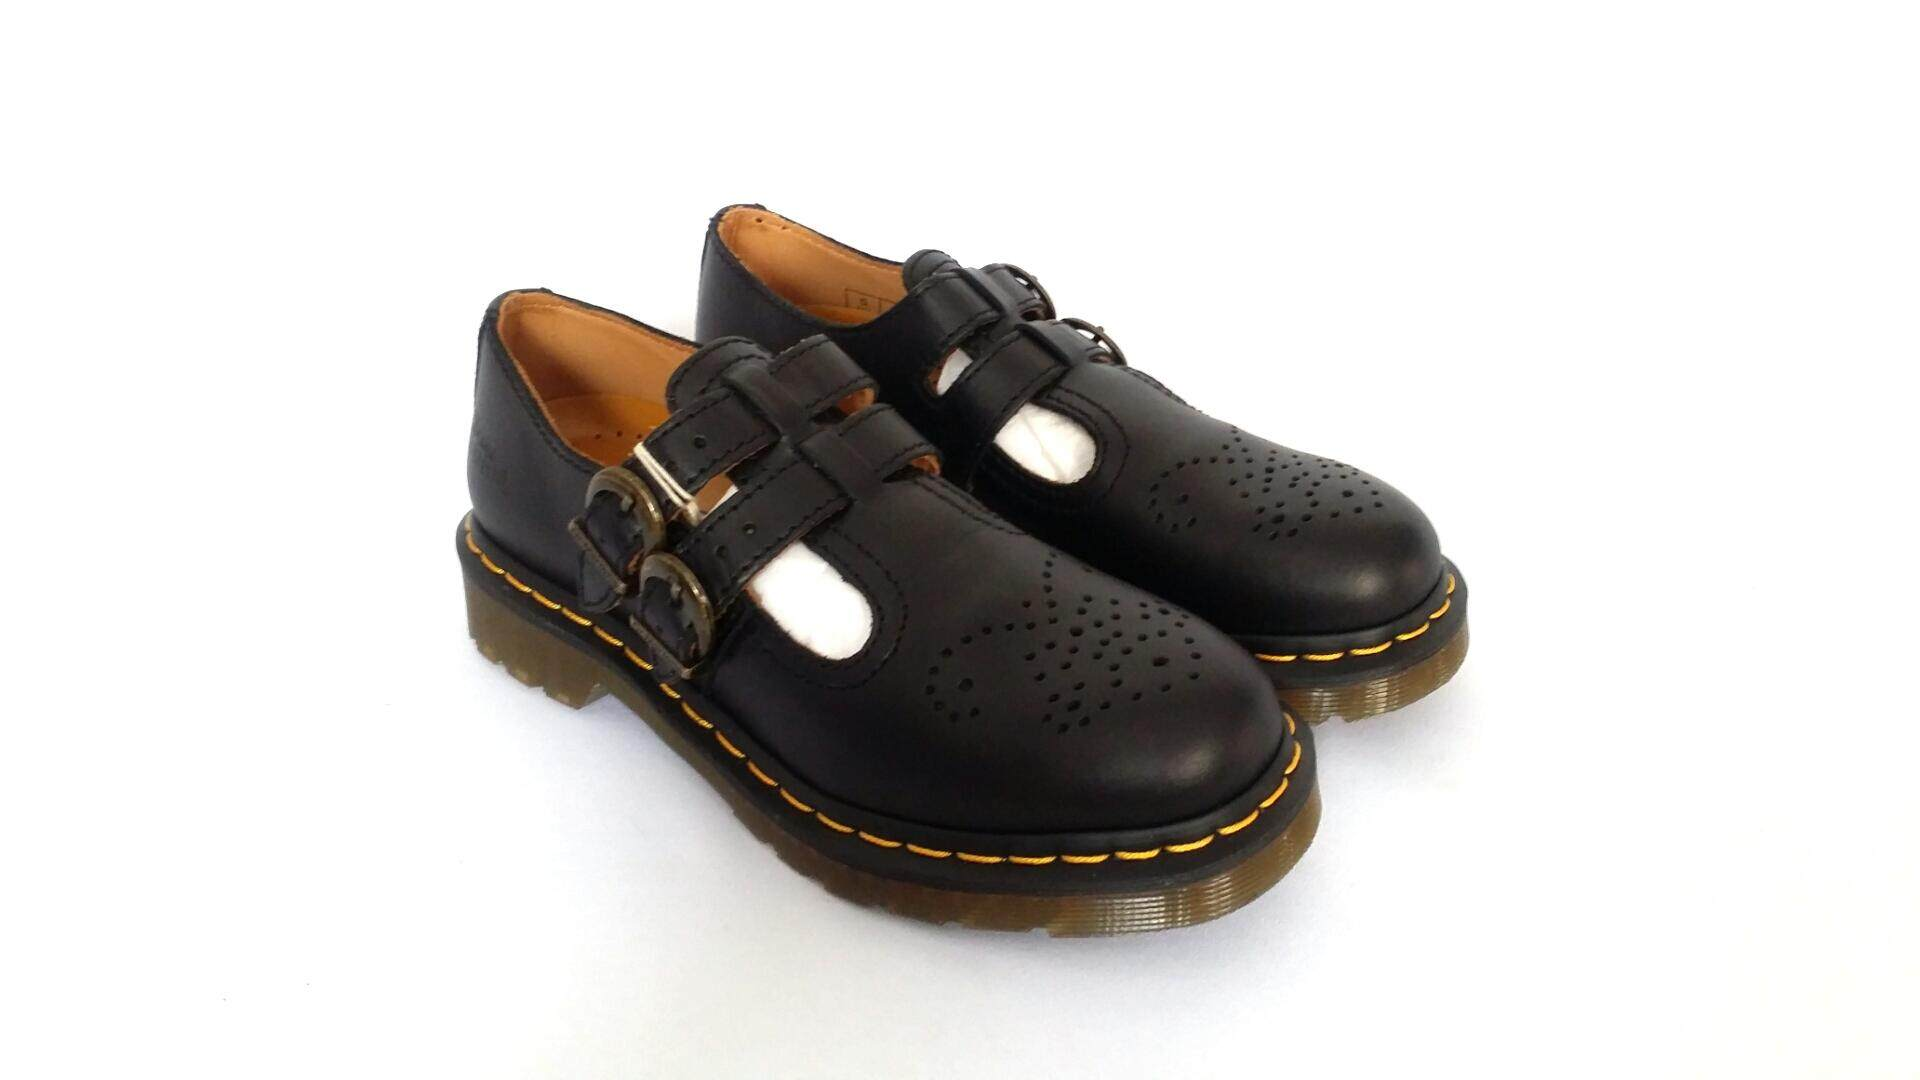 dfaae58185d Dr Martens - Buy Dr Martens at Best Price in Malaysia